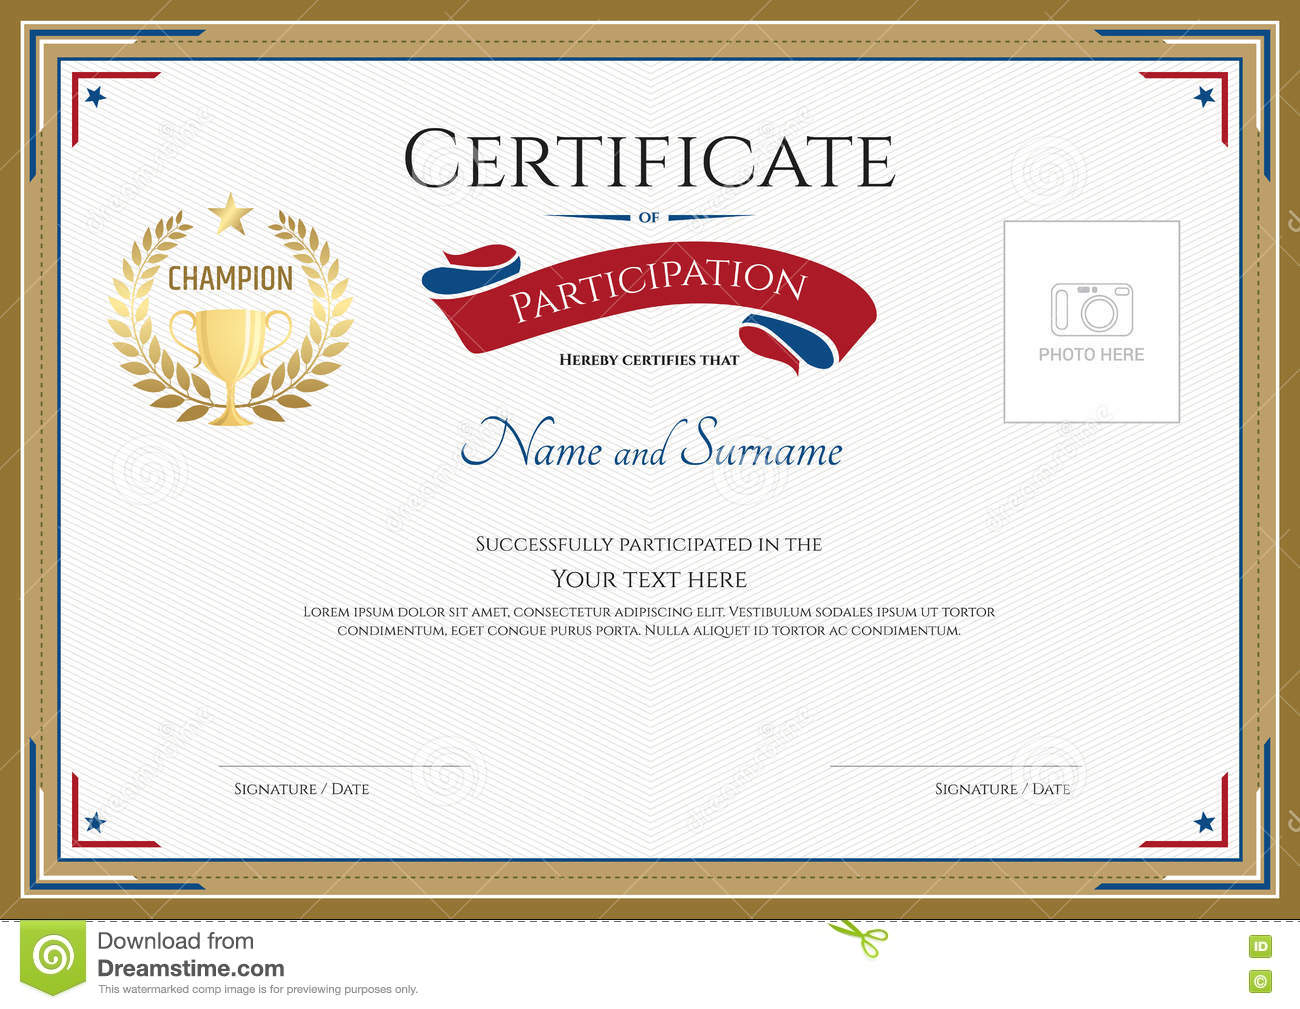 Certificate Of Participation Free Template